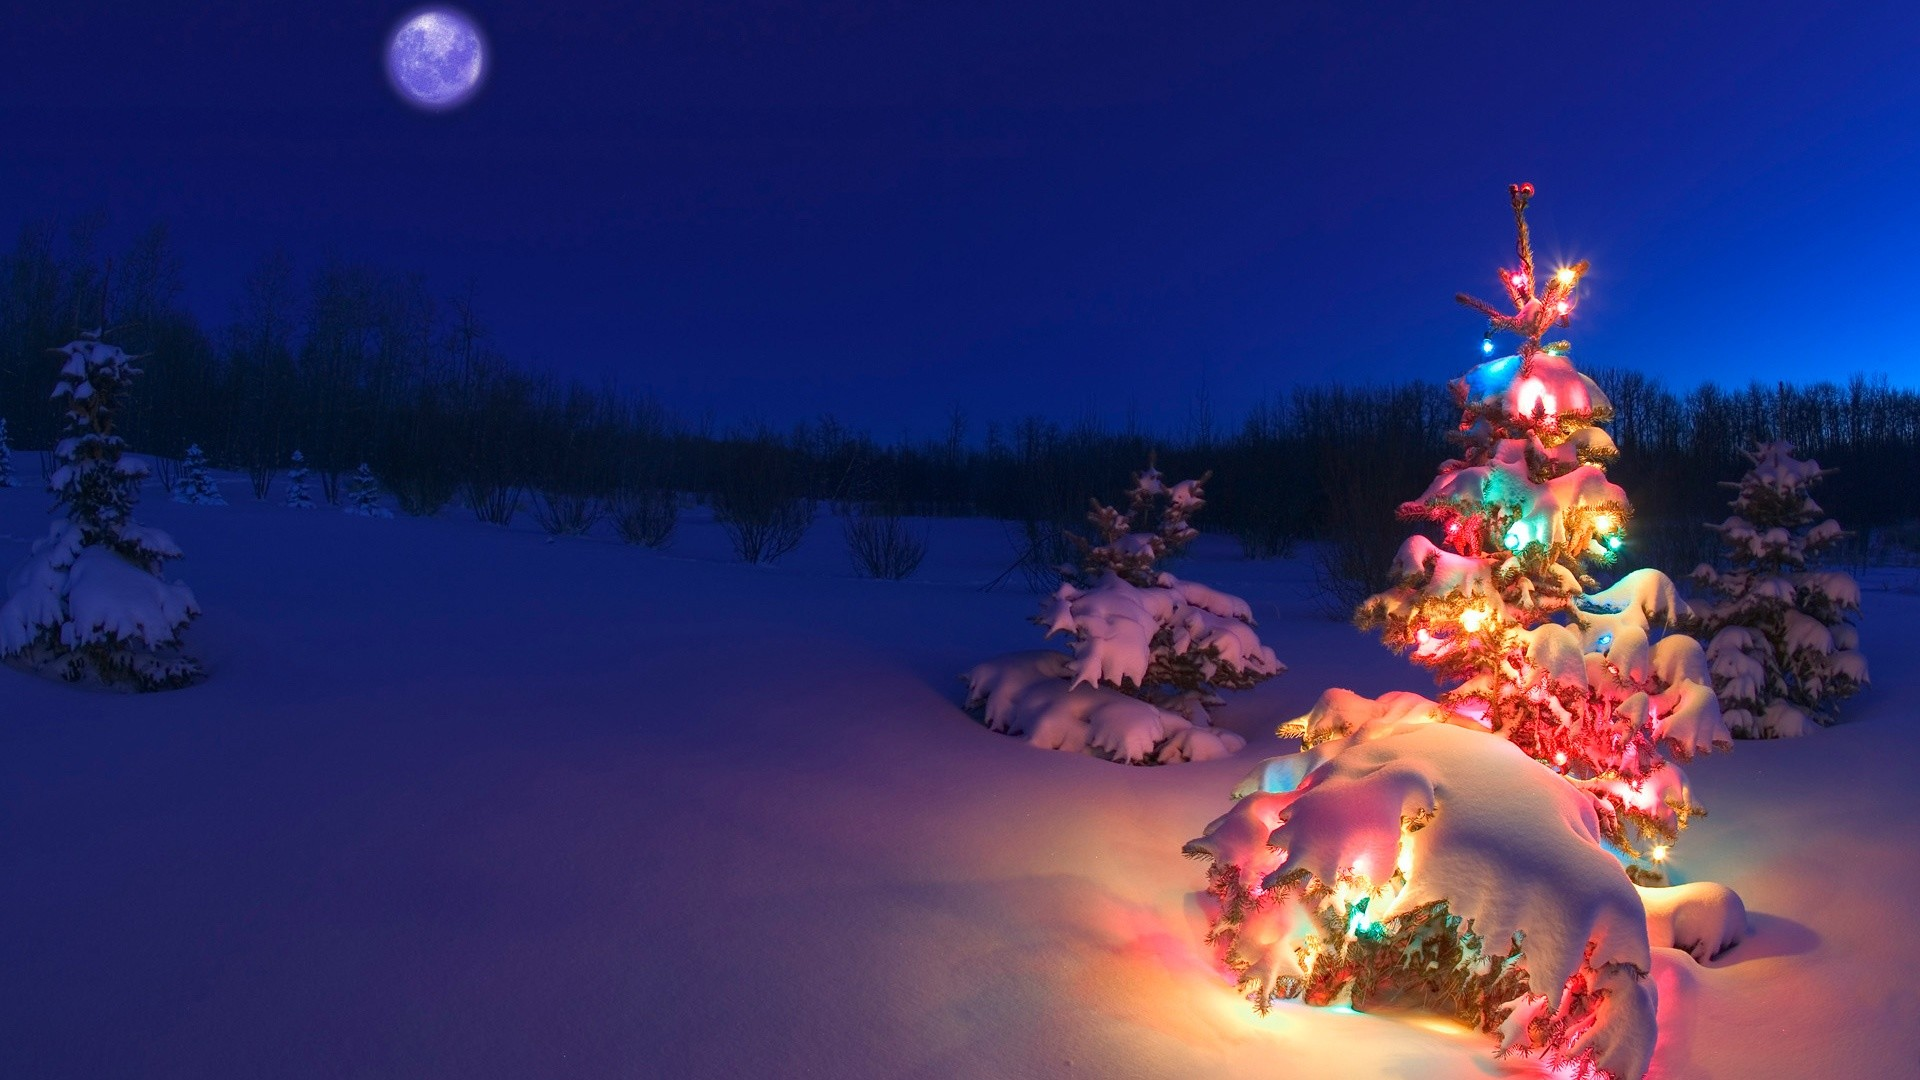 Christmas Wallpaper HD with Snow and Moon